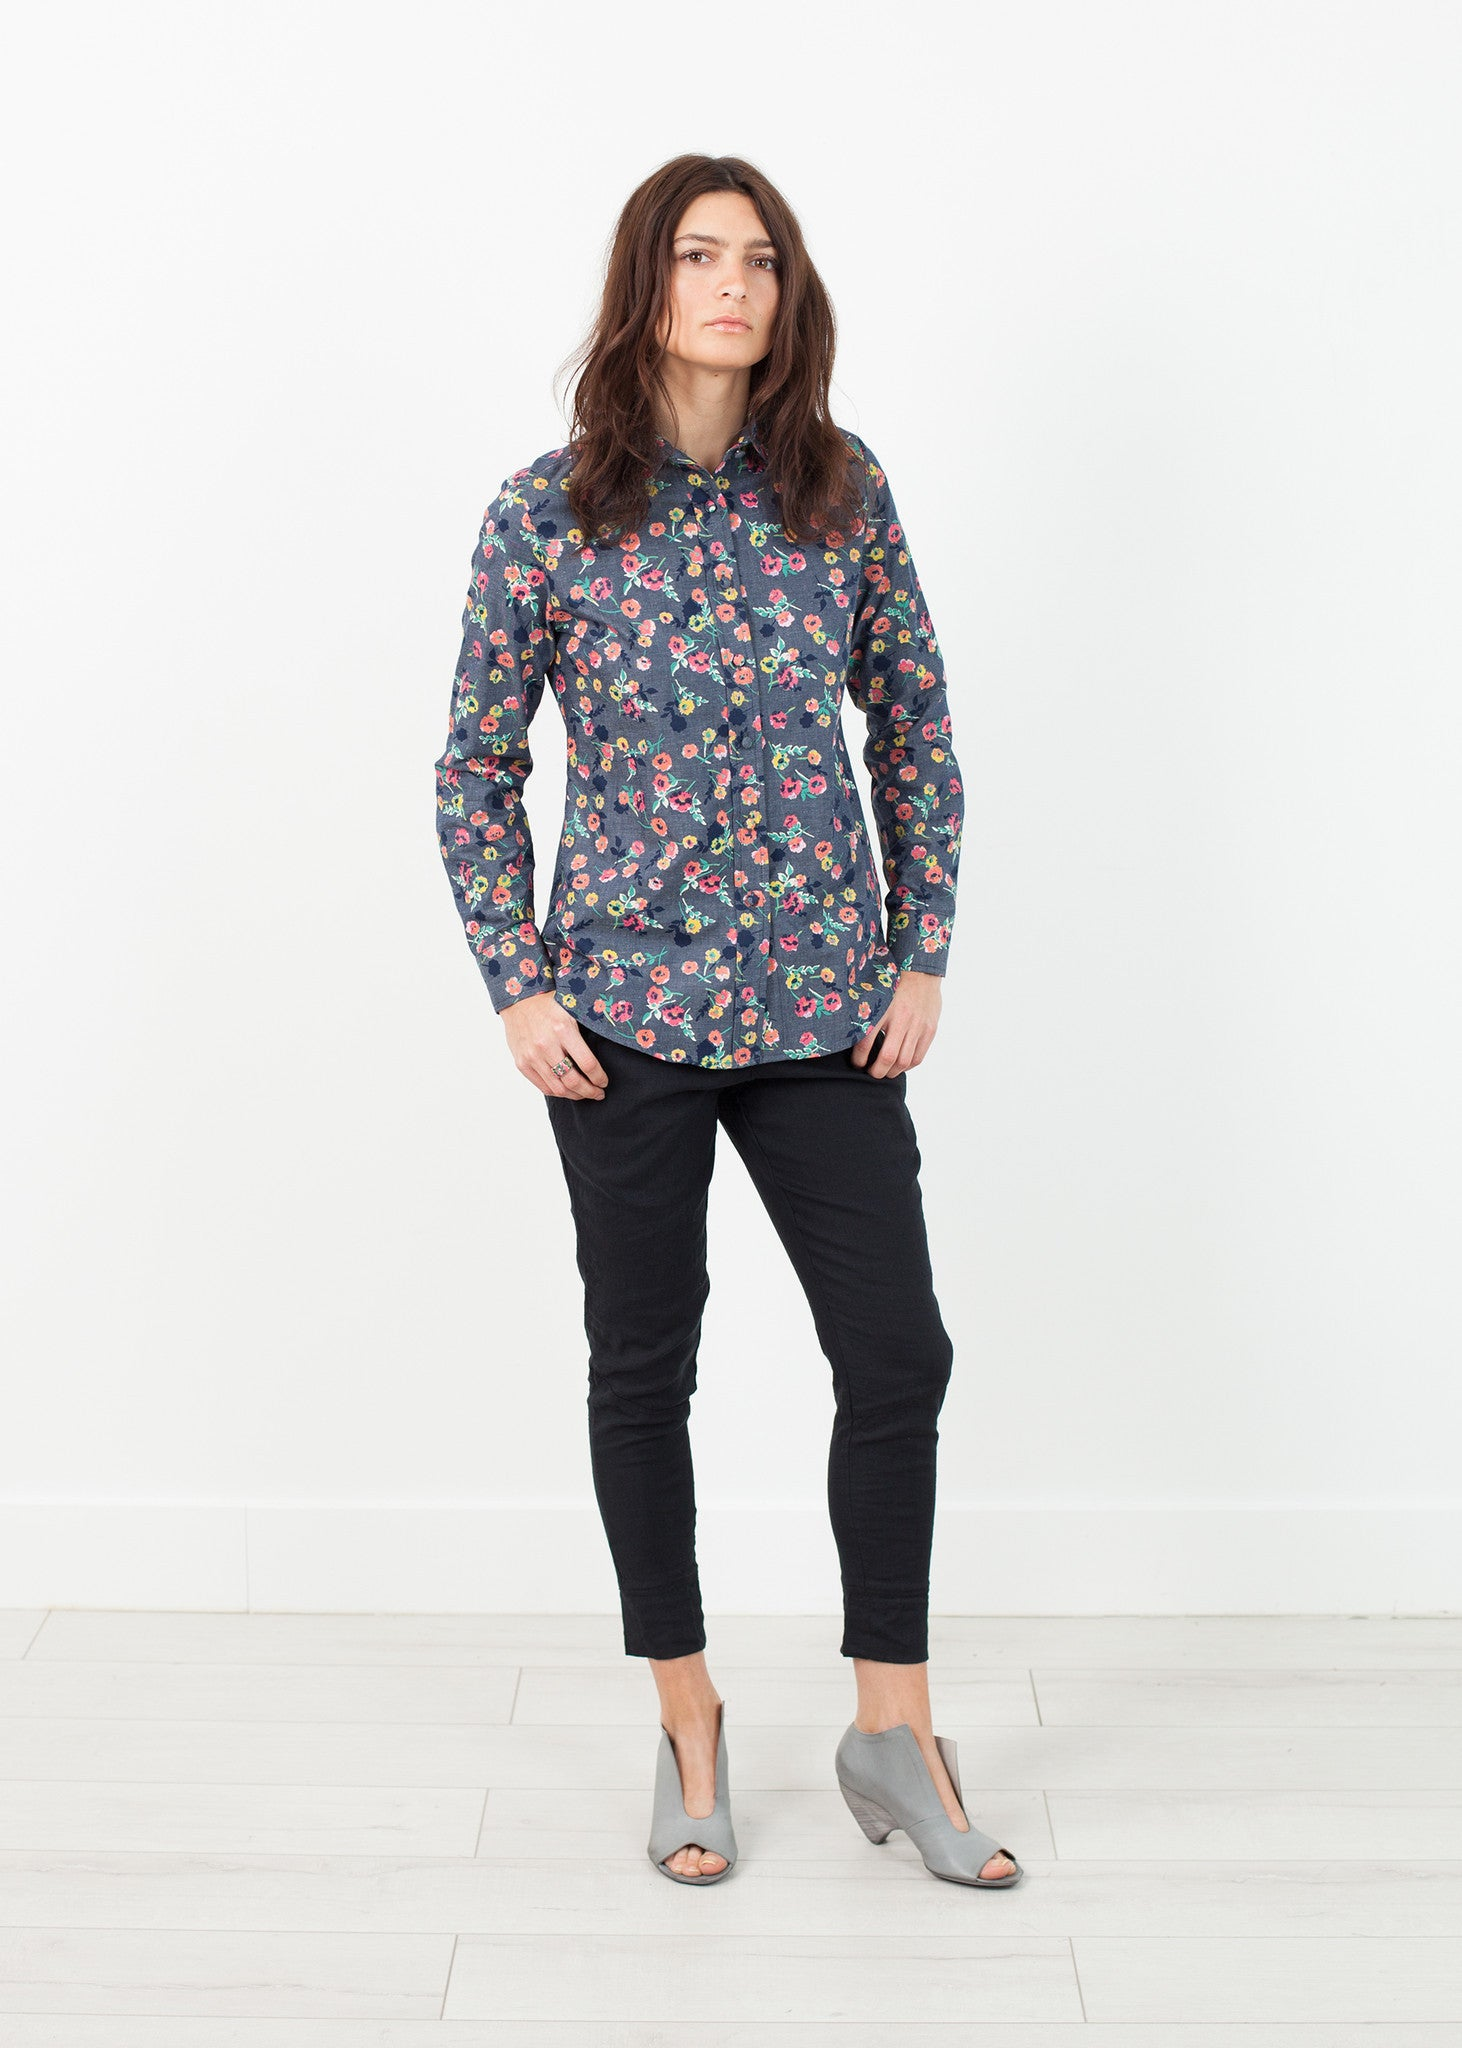 Long Sleeve Blouse in Black/Floral